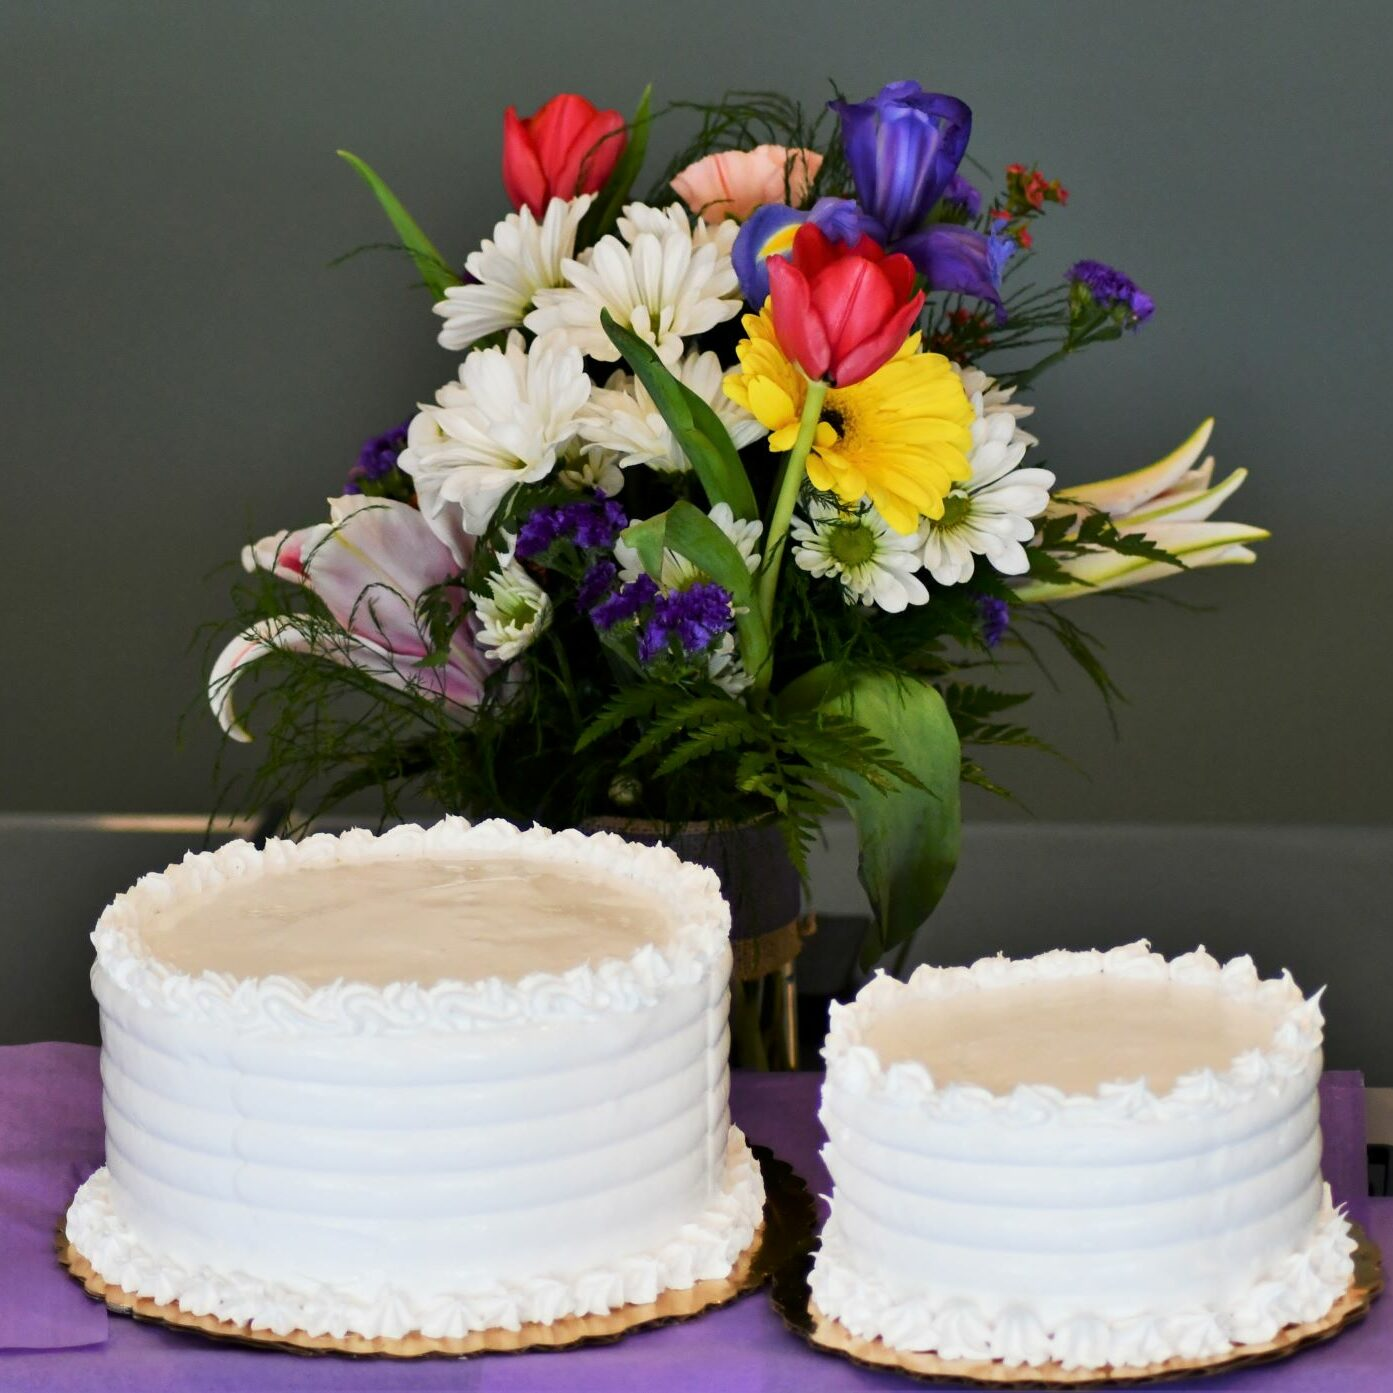 Ice Cream Cakes product image